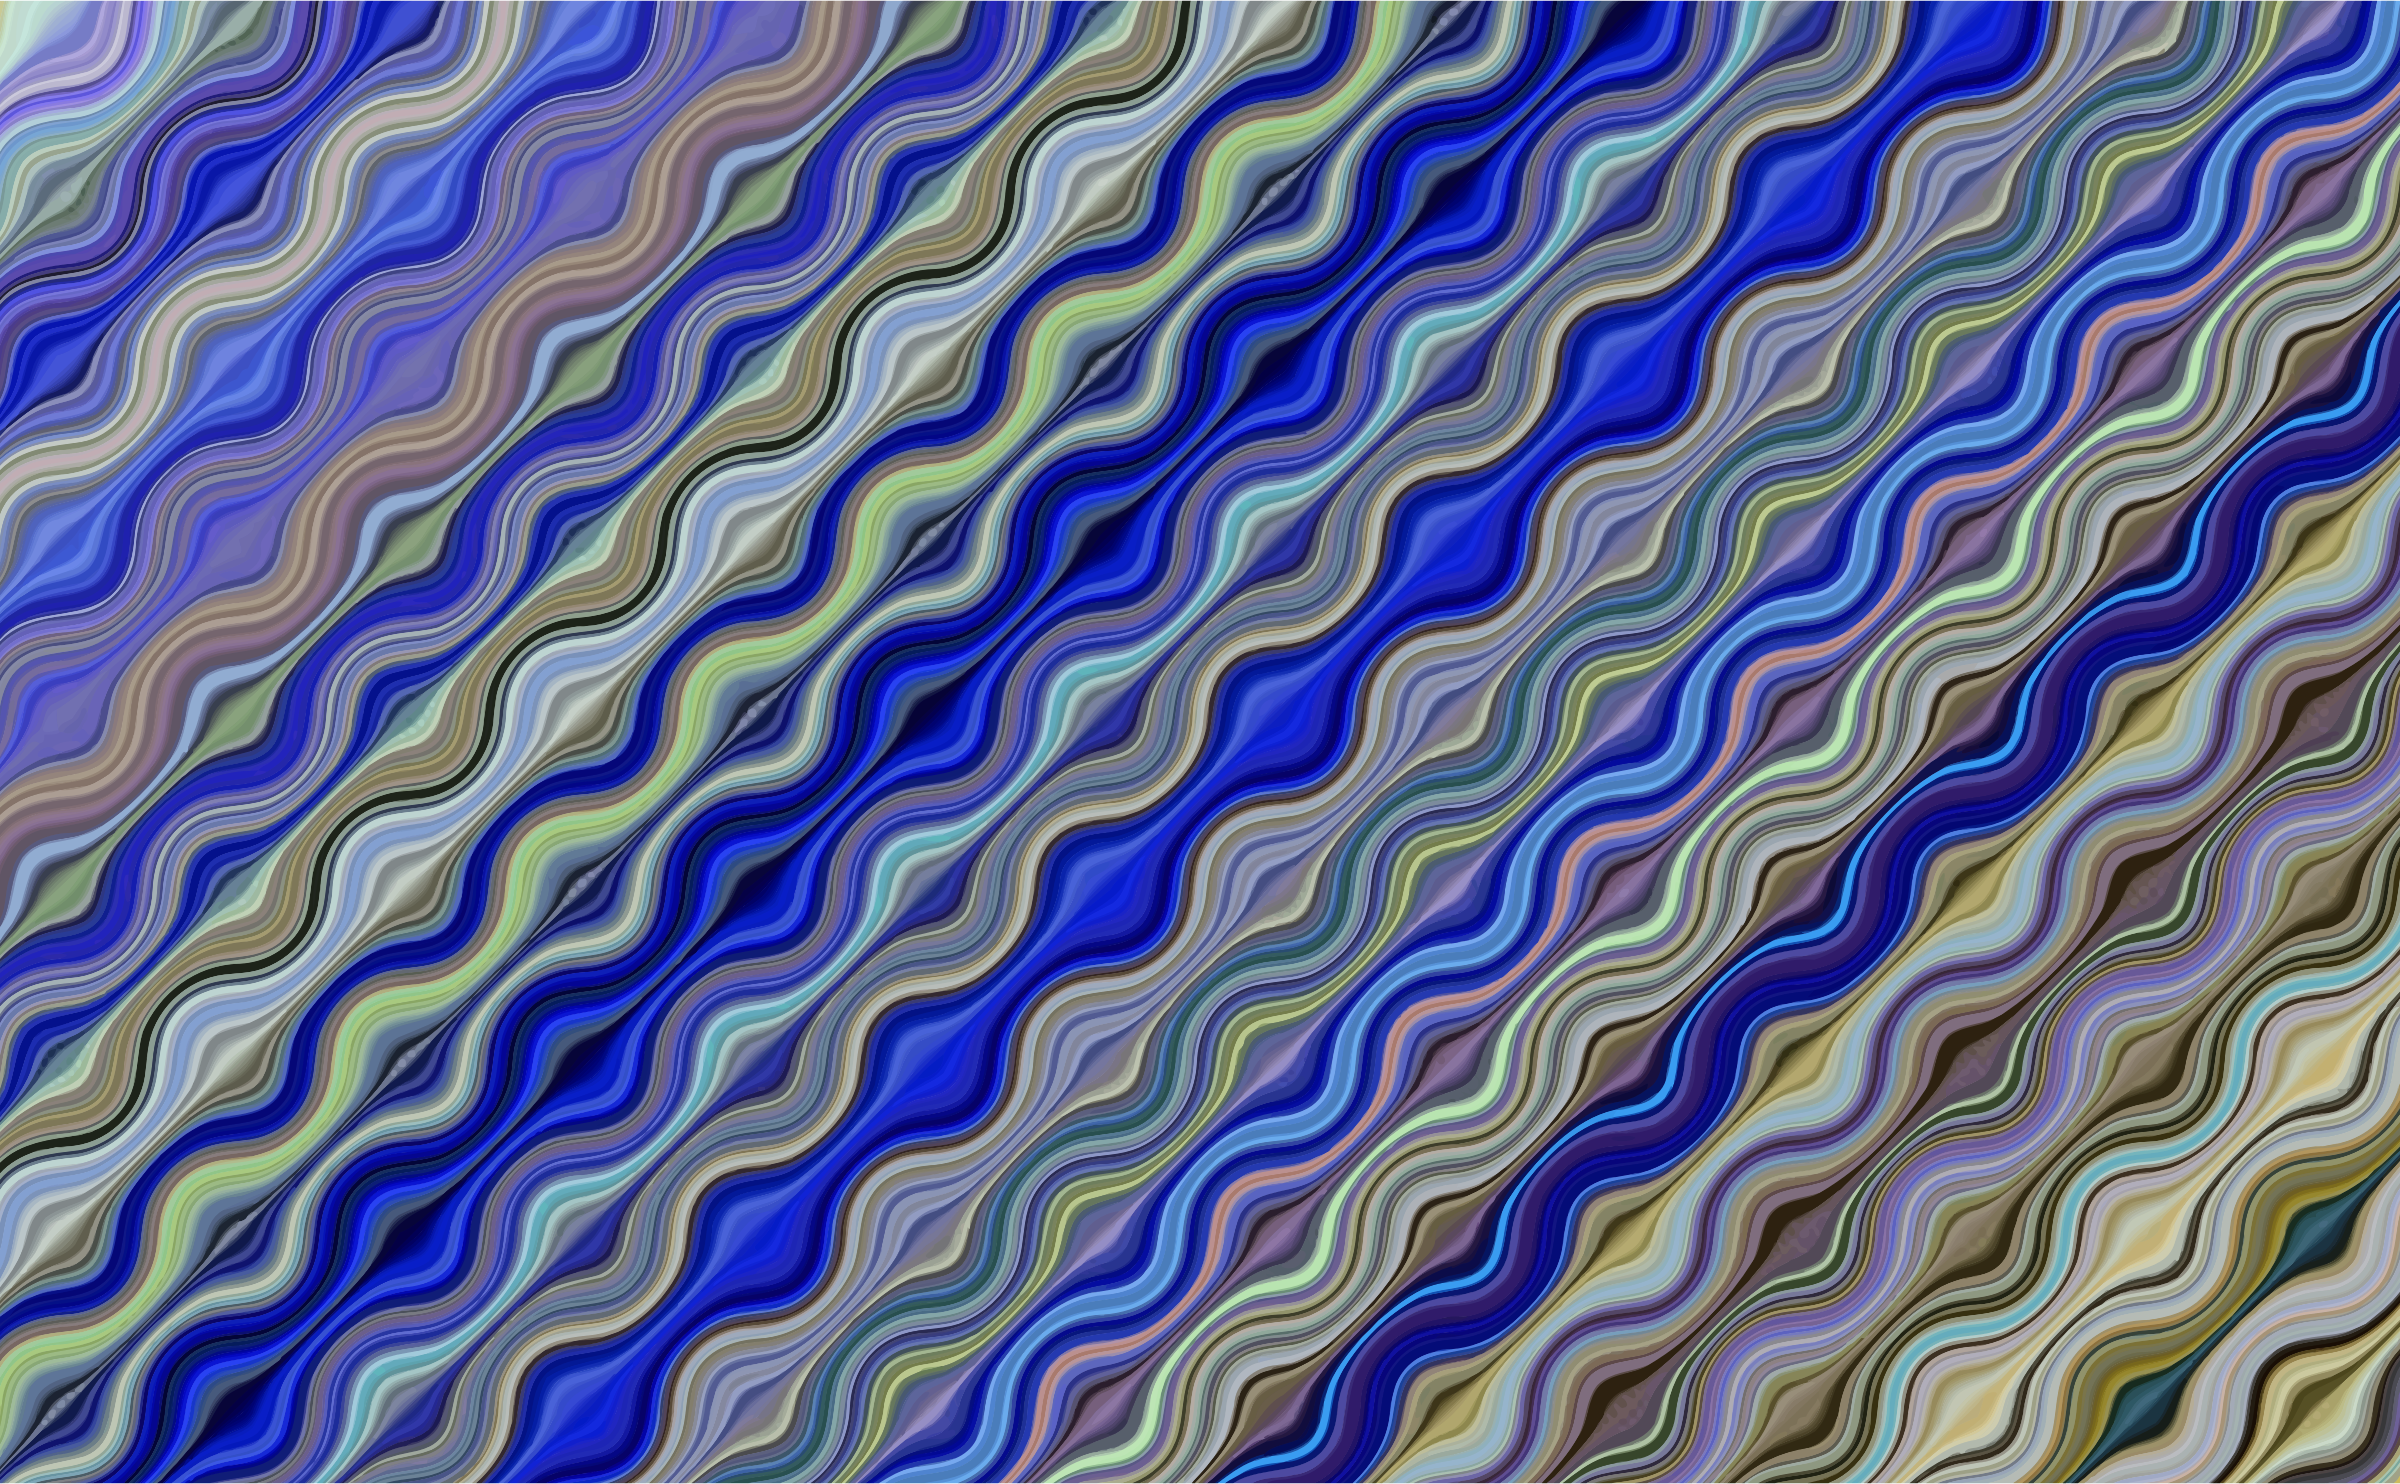 Background pattern 216 (colour 3) by Firkin